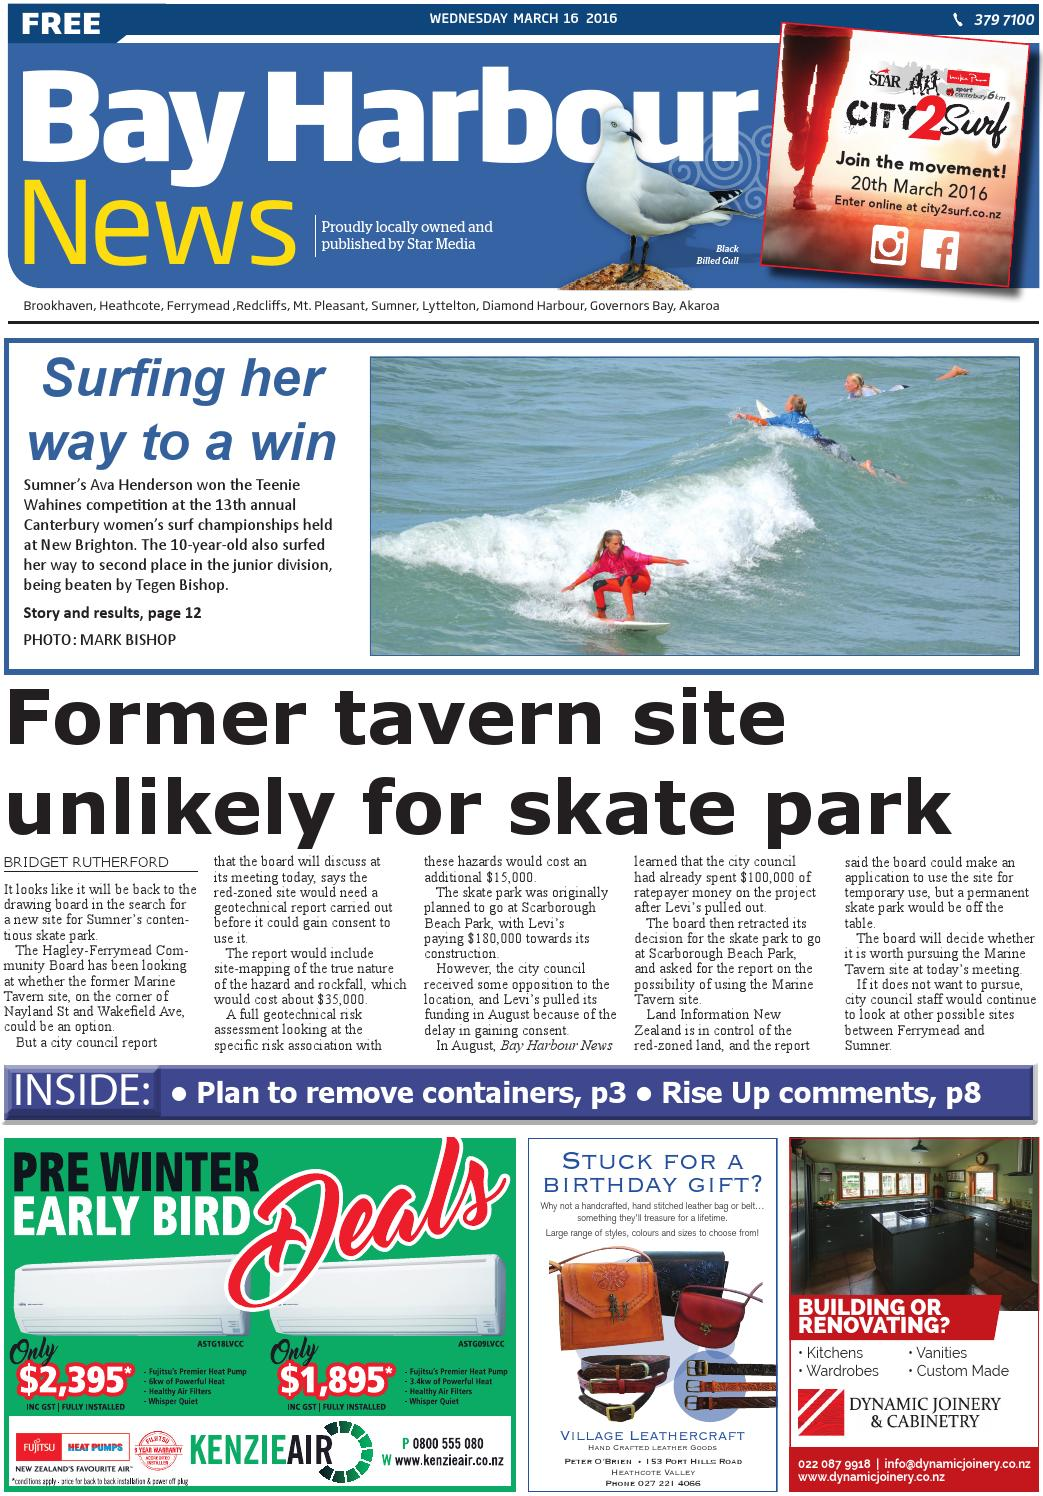 Bay Harbour News 16-03-16 by Local Newspapers - issuu